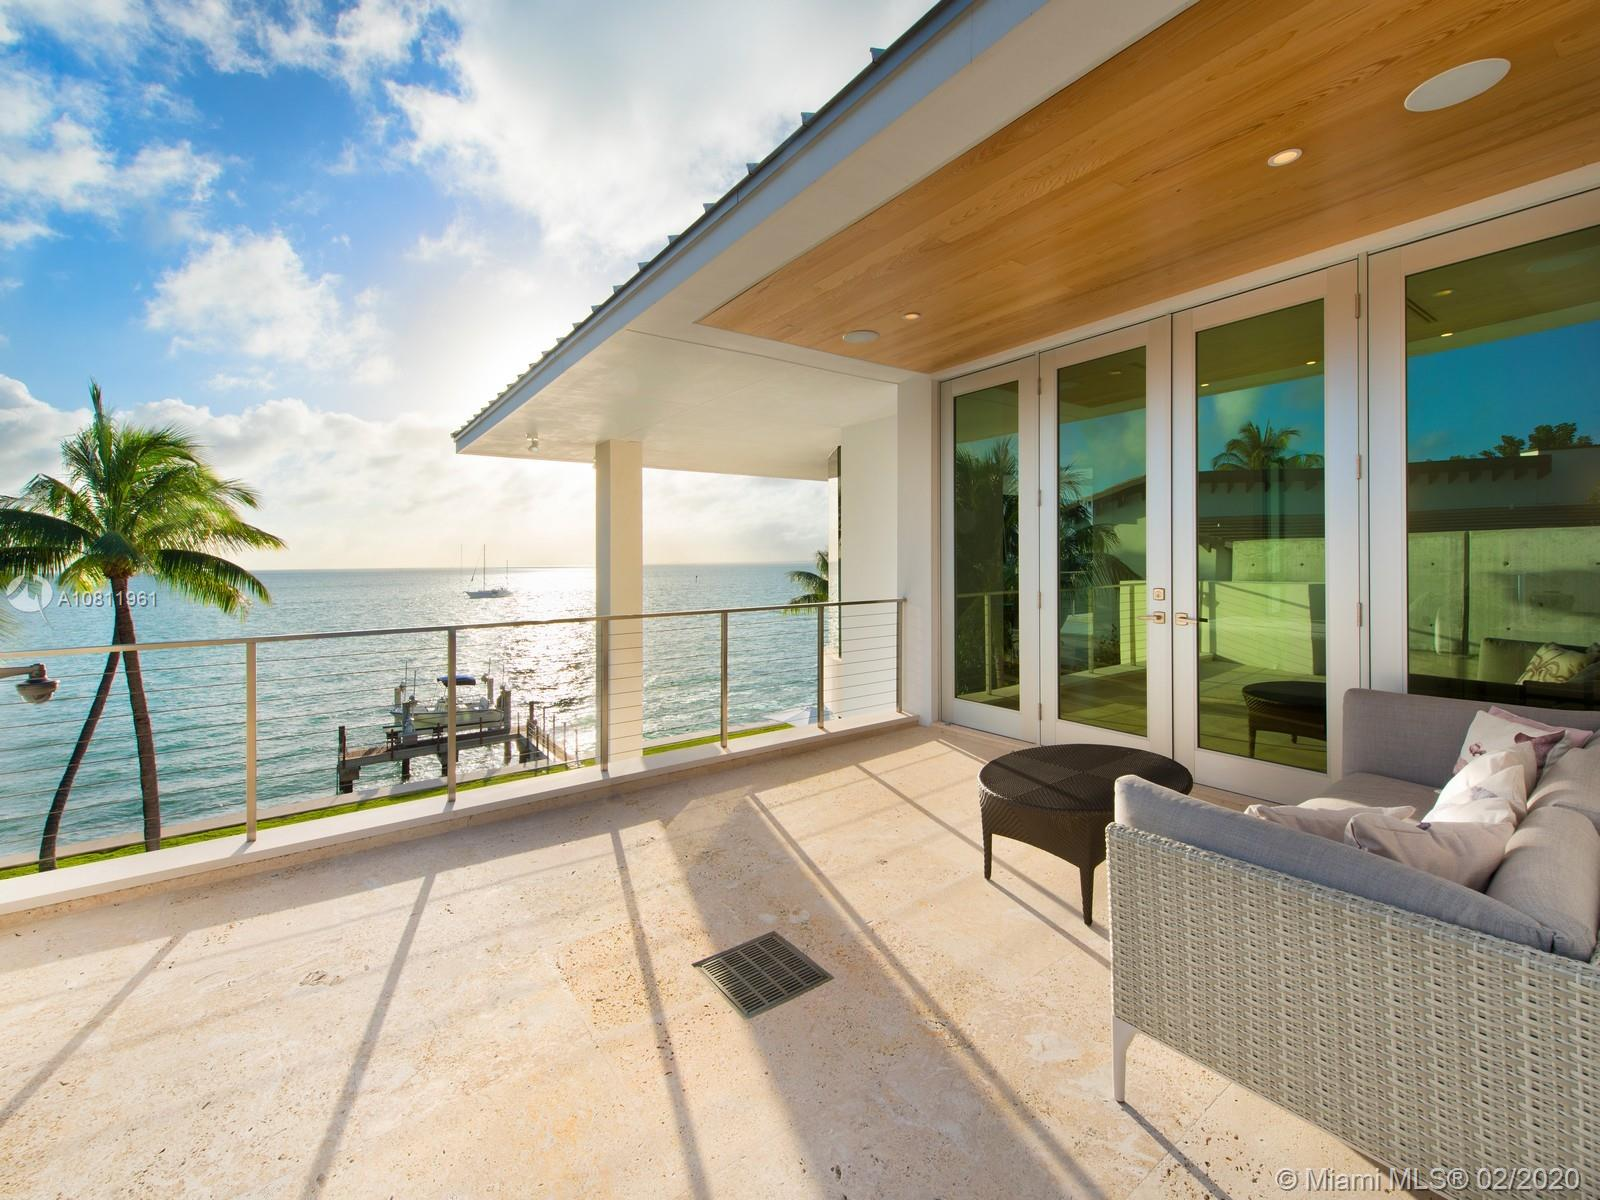 Master bedroom private terrace with ocean views.